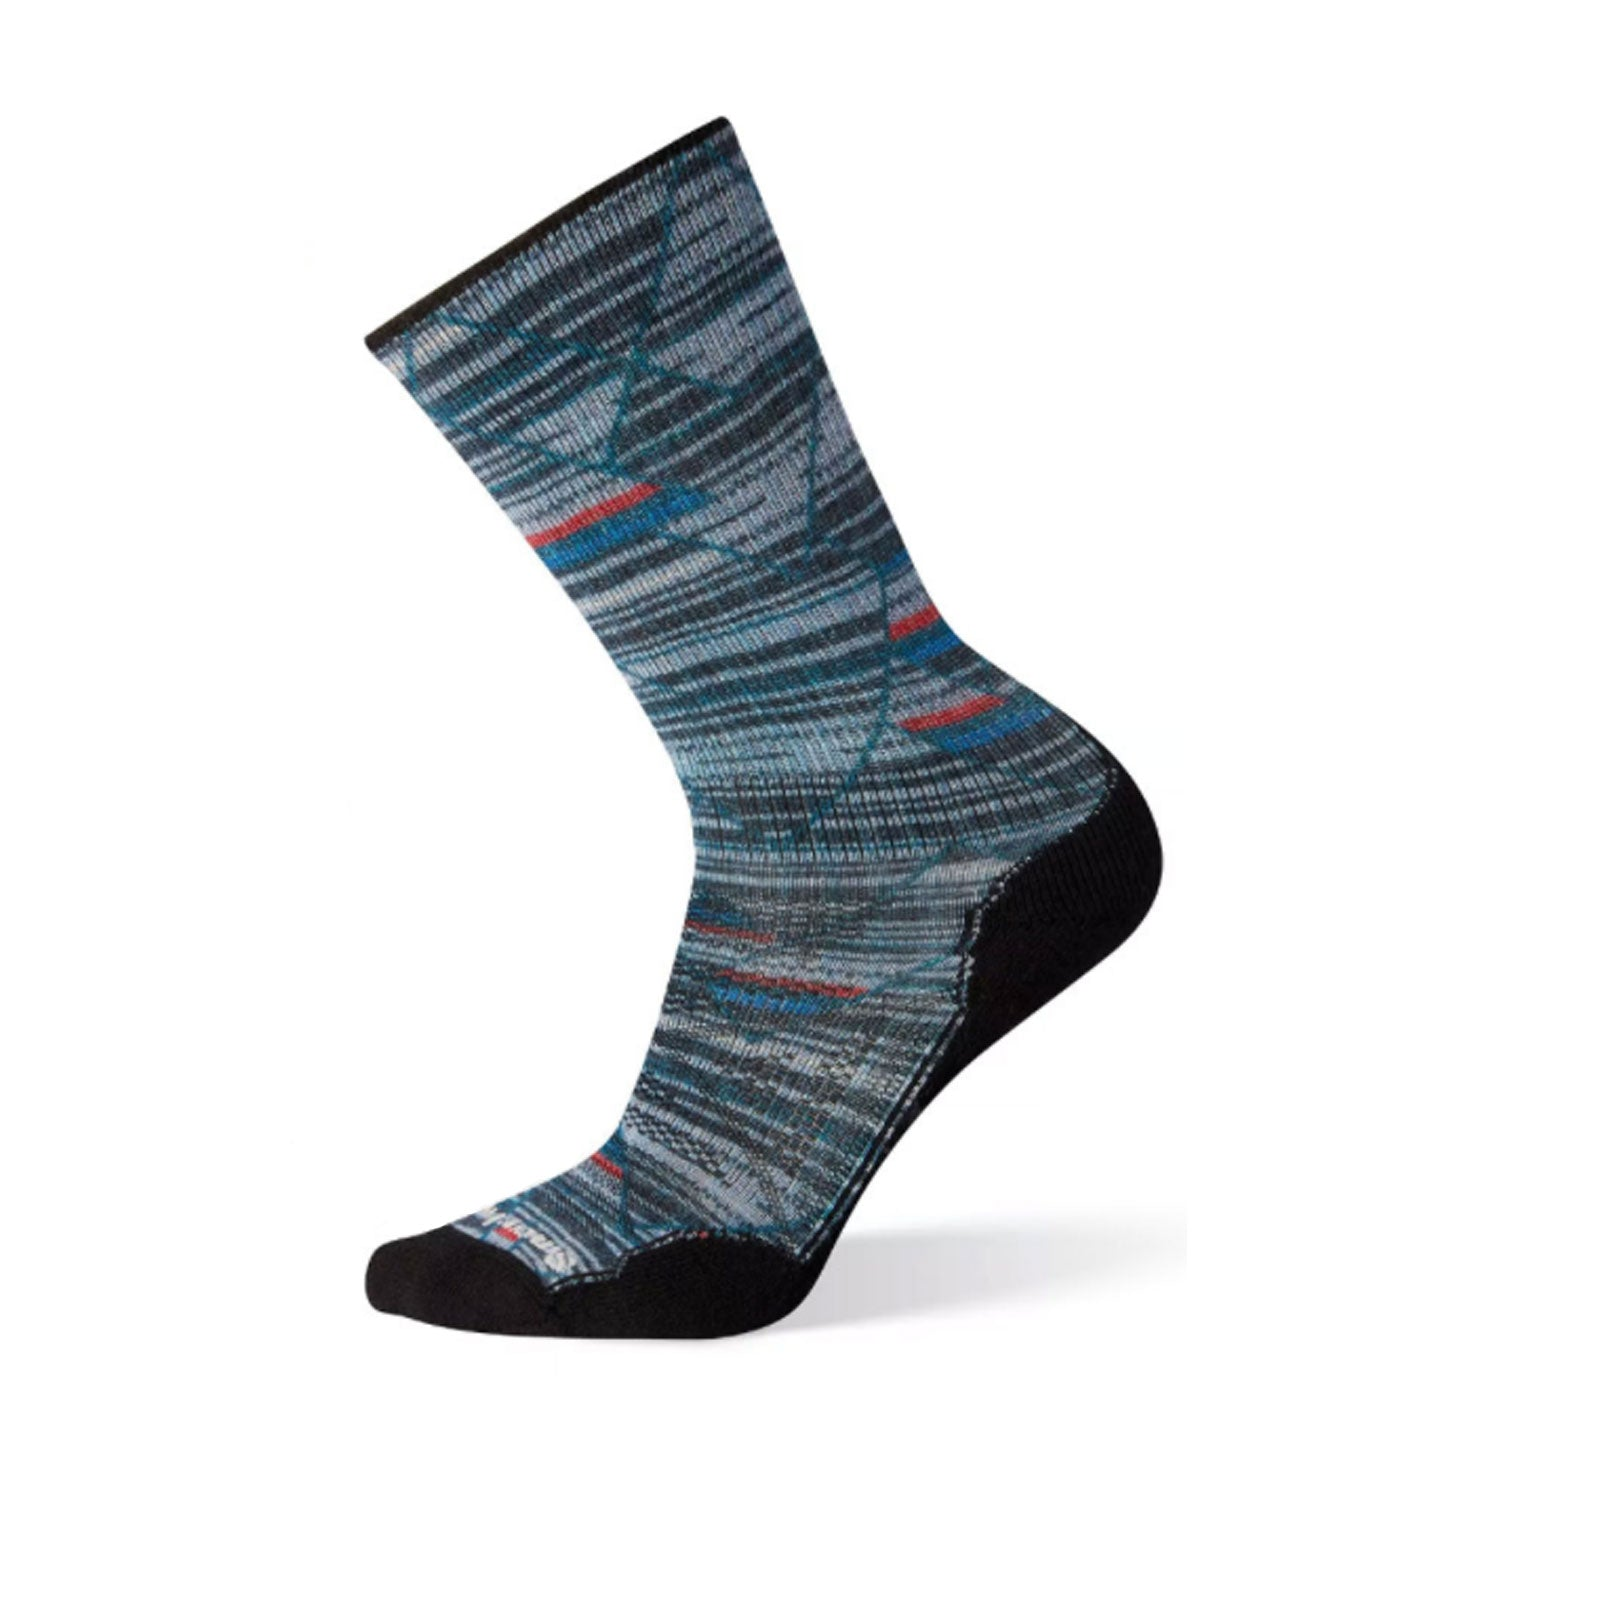 Smartwool PhD Outdoor Light Margarita Print Crew (Men) - Deep Navy Socks|Perf - Crew - The Heel Shoe Fitters